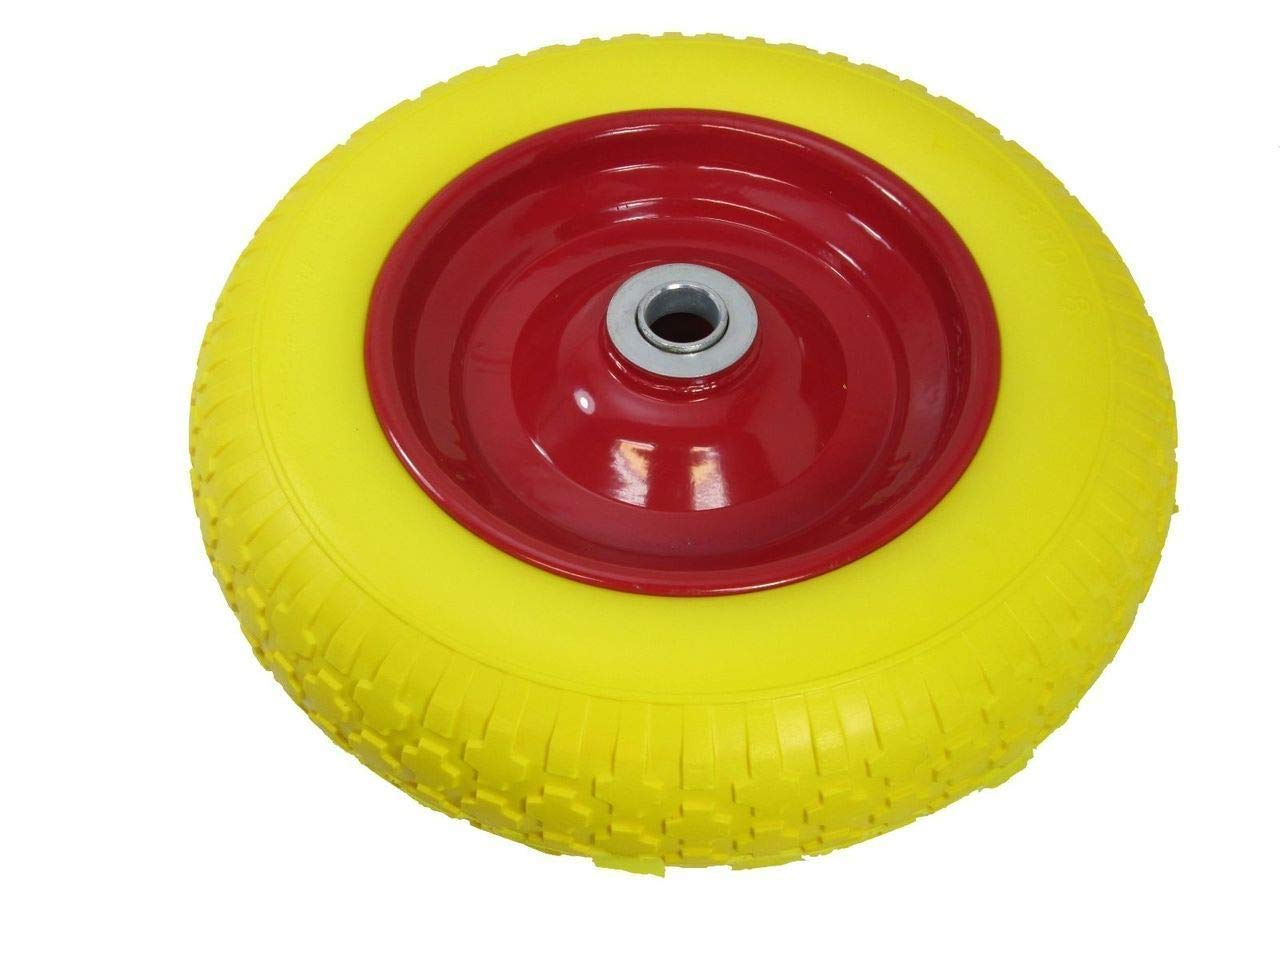 Replacement Wheel Puncture Proof Wheelbarrow Wheel TZ